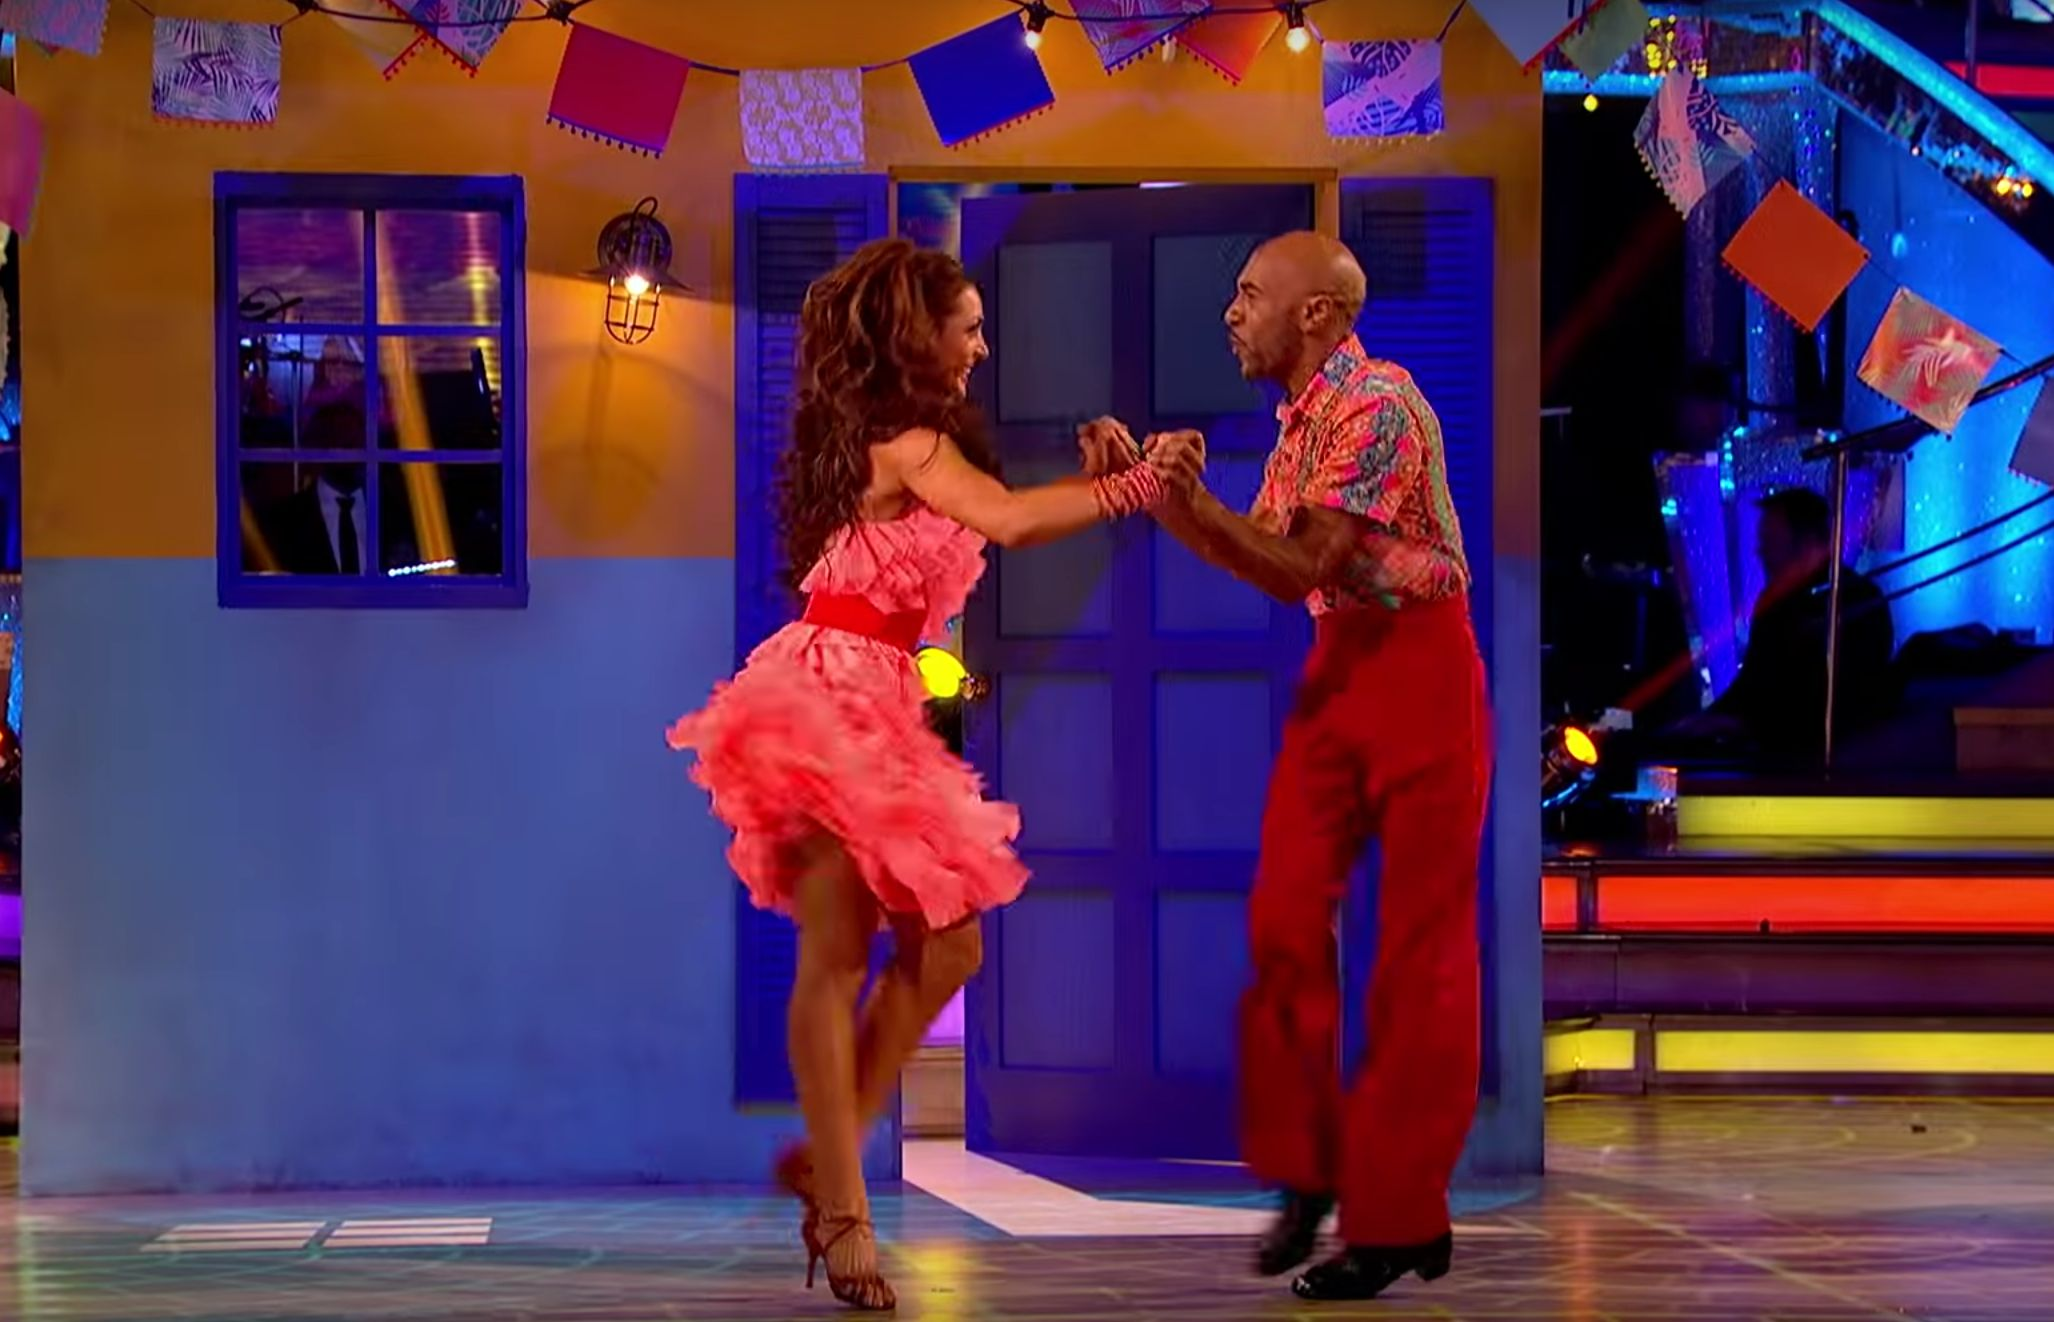 Danny John-Jules And Amy Dowden Are The Seventh Couple Eliminated From